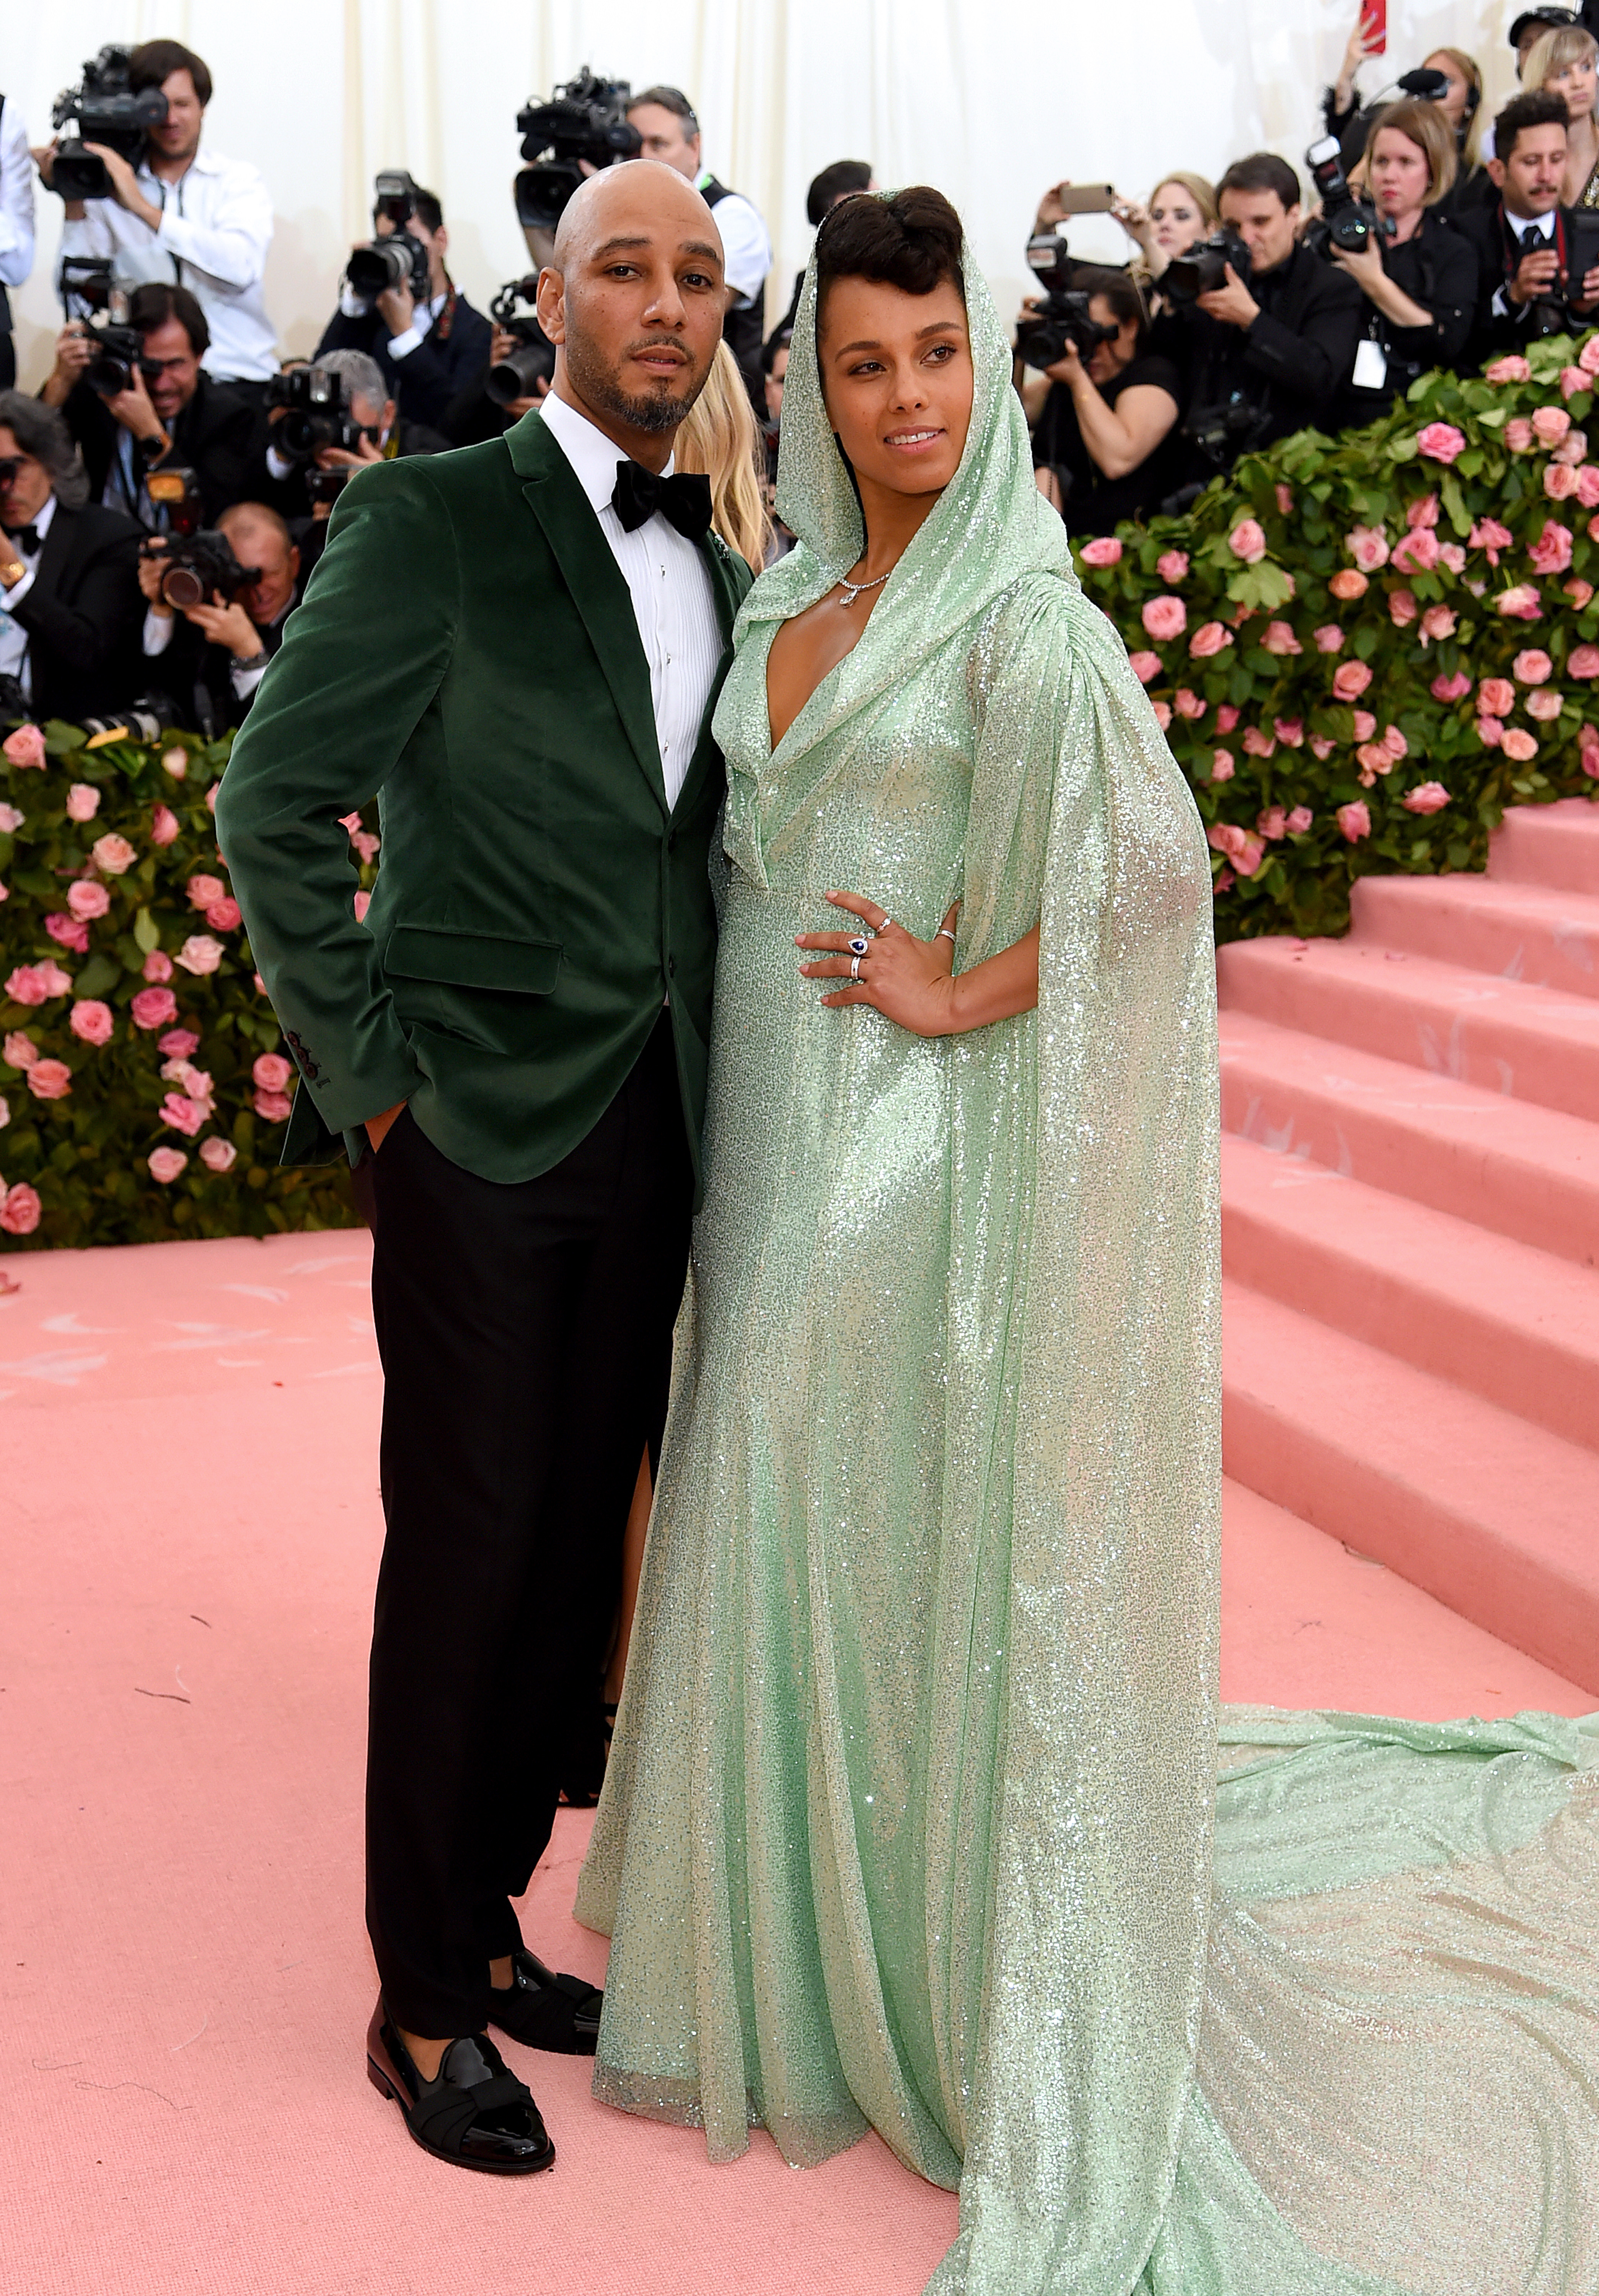 """Swizz Beatz and Alicia Keys attend the Costume Institute Benefit celebrating the opening of """"Camp: Notes on Fashion"""" at The Metropolitan Museum of Art in New York City on May 6, 2019."""